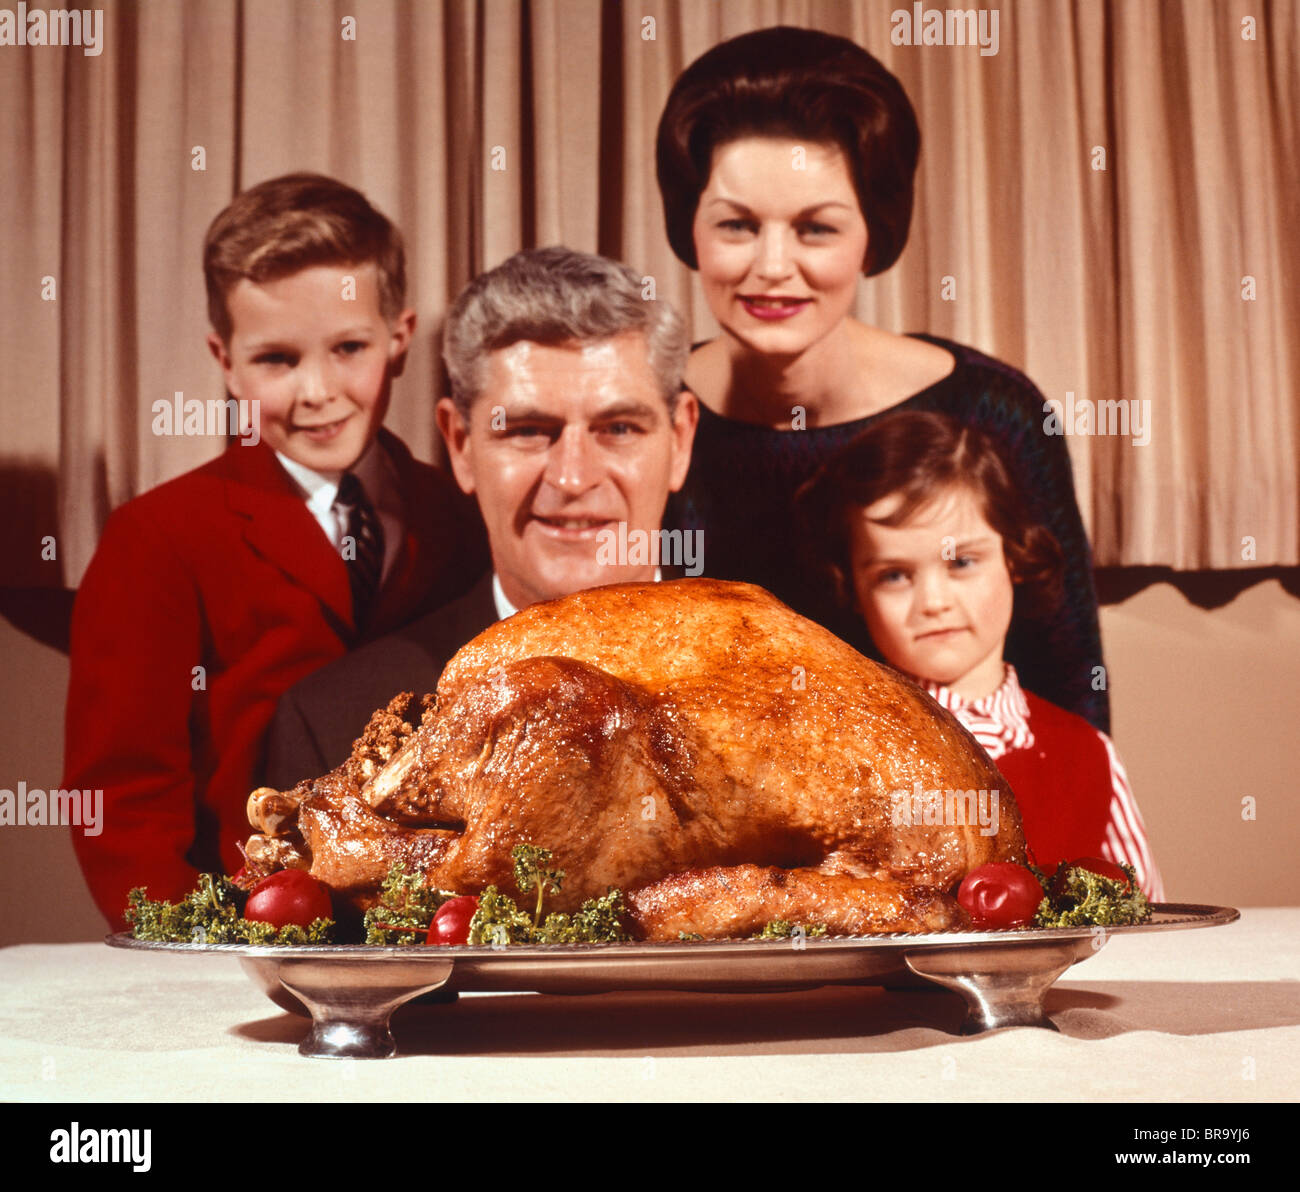 1960s PORTRAIT OF FAMILY FATHER MOTHER SON DAUGHTER LOOKING AT THANKSGIVING OR CHRISTMAS ROAST TURKEY - Stock Image